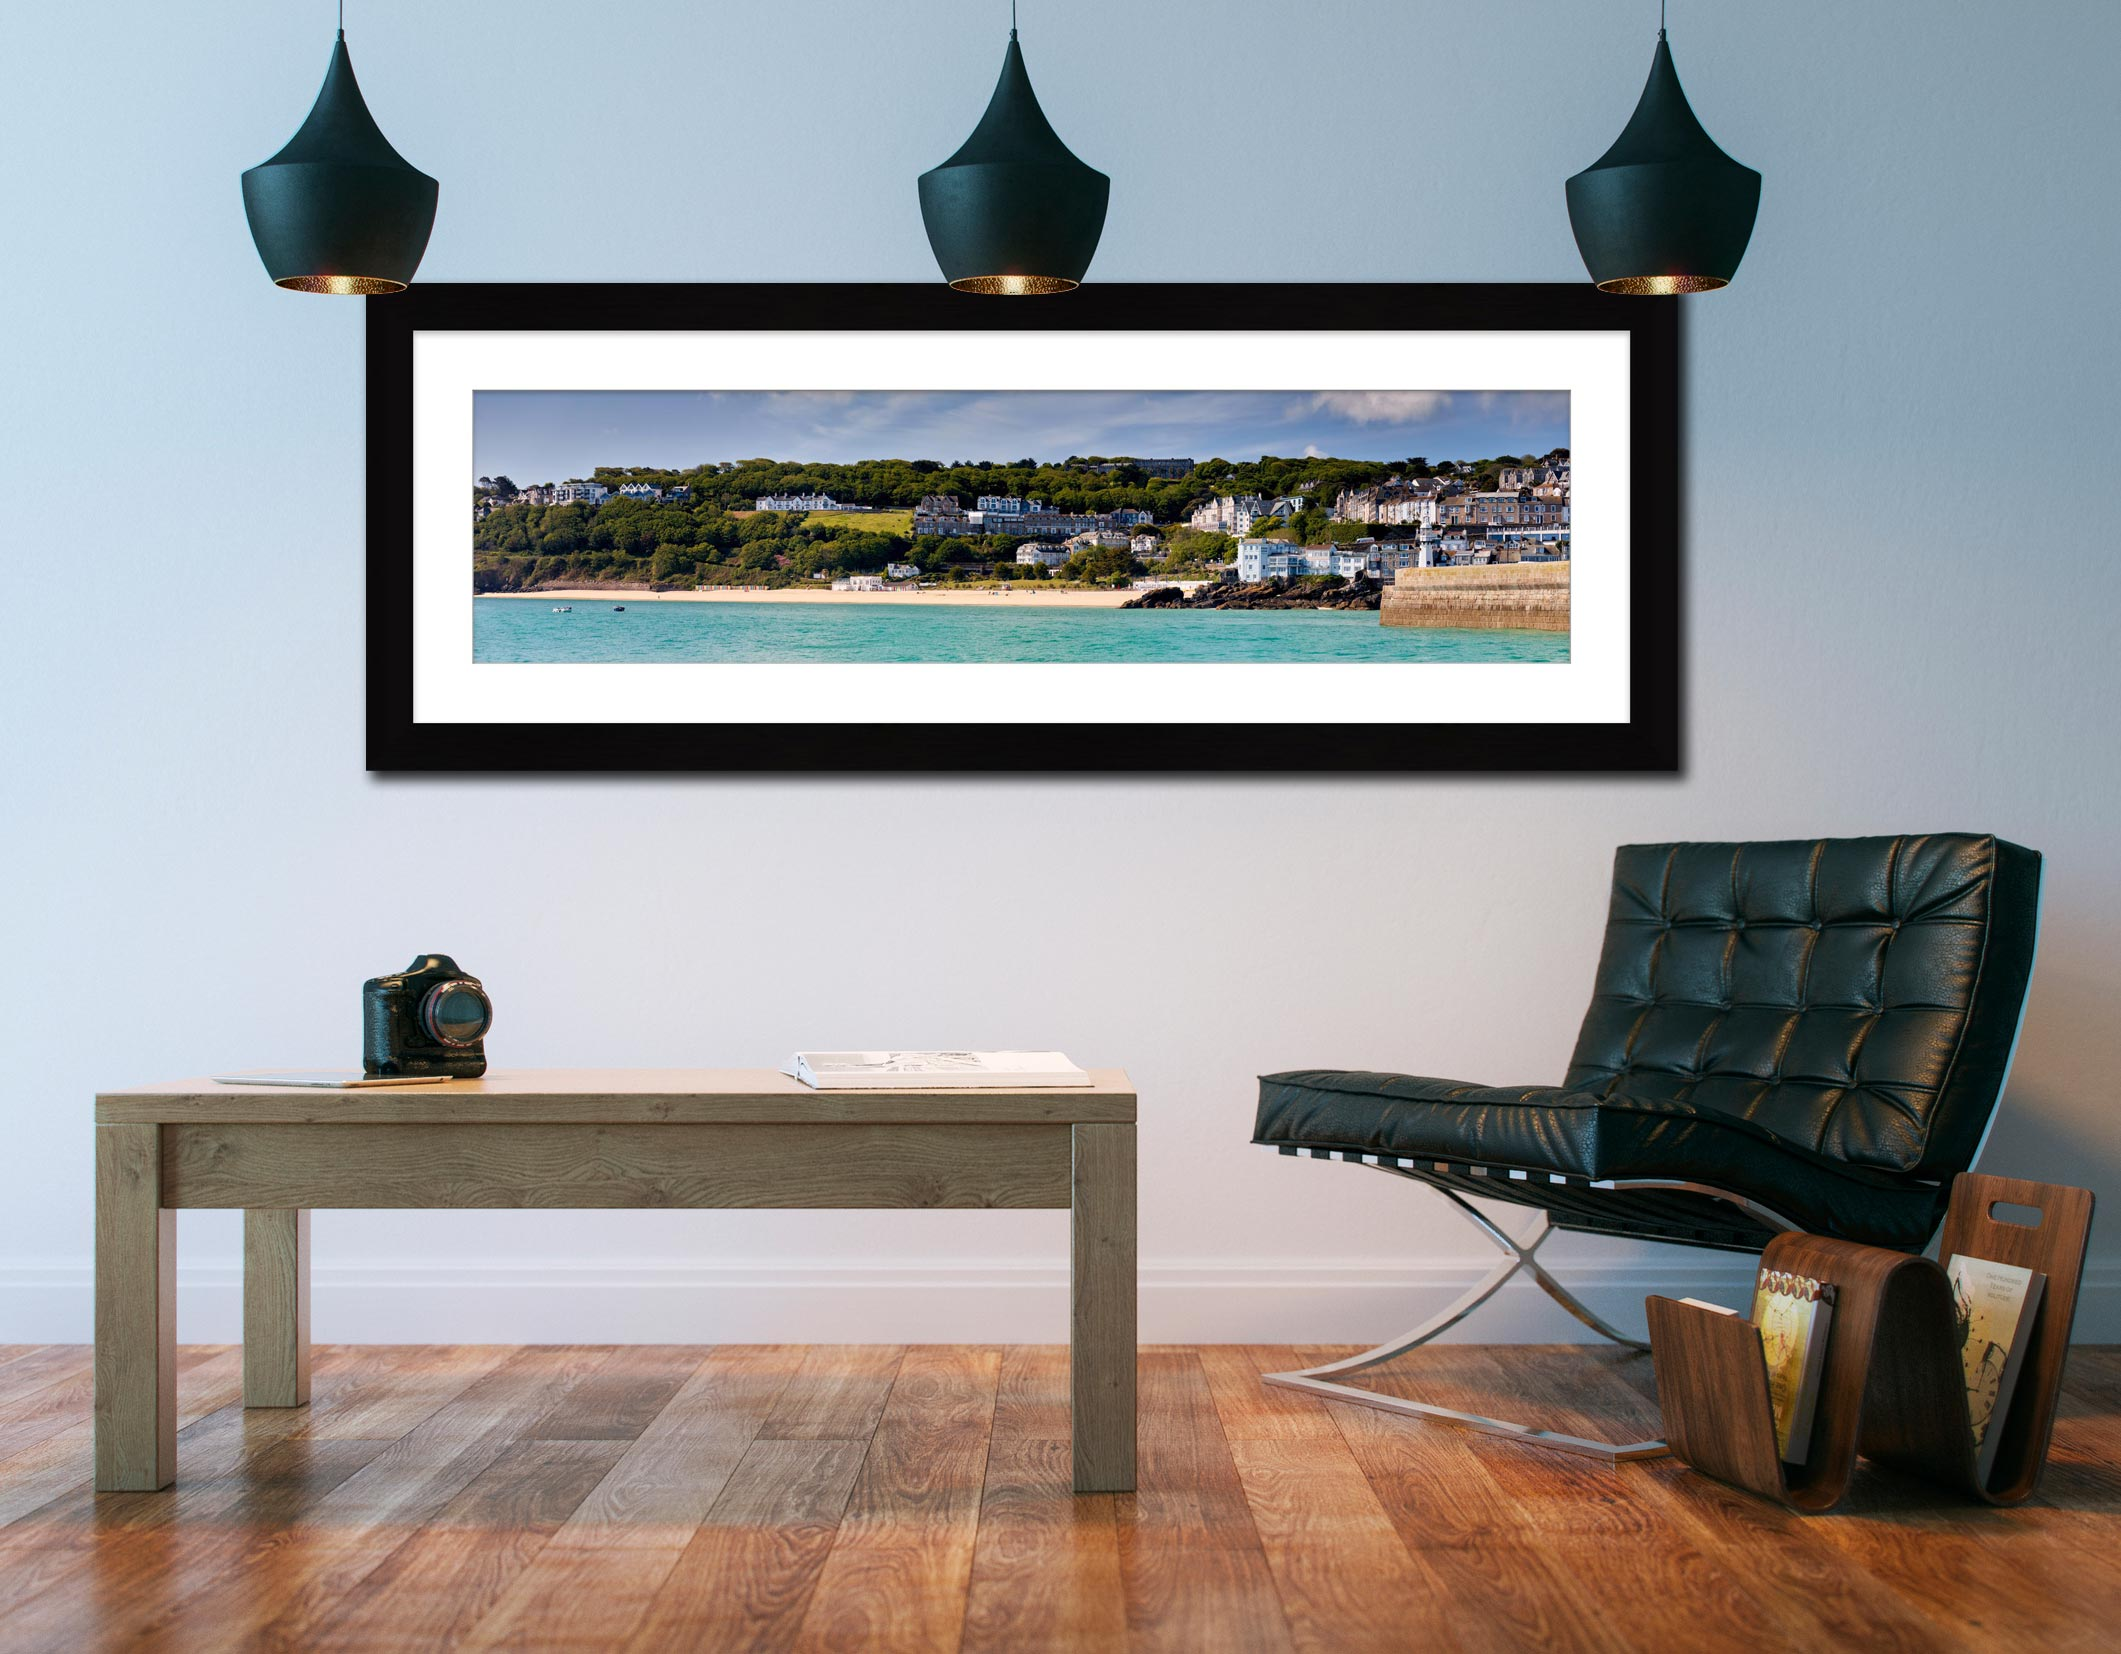 Porthminster Beach Panorama - Framed Print with Mount on Wall